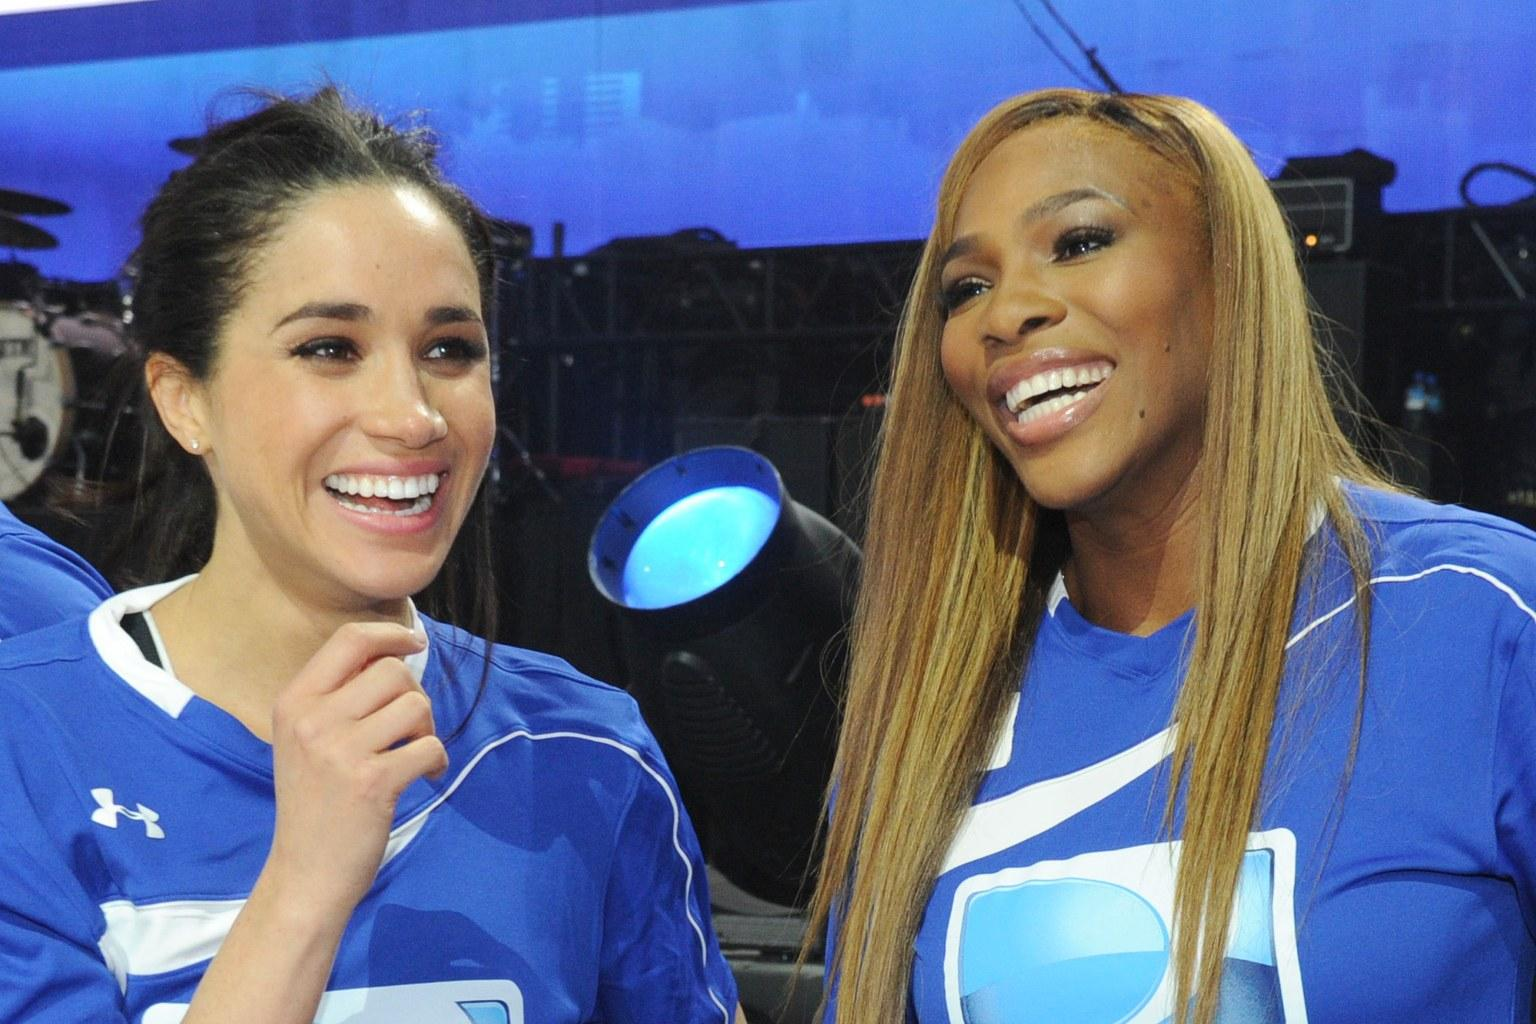 Serena Williams Gushes Over BFF Meghan Markle - She 'Couldn't Be A Better Friend'